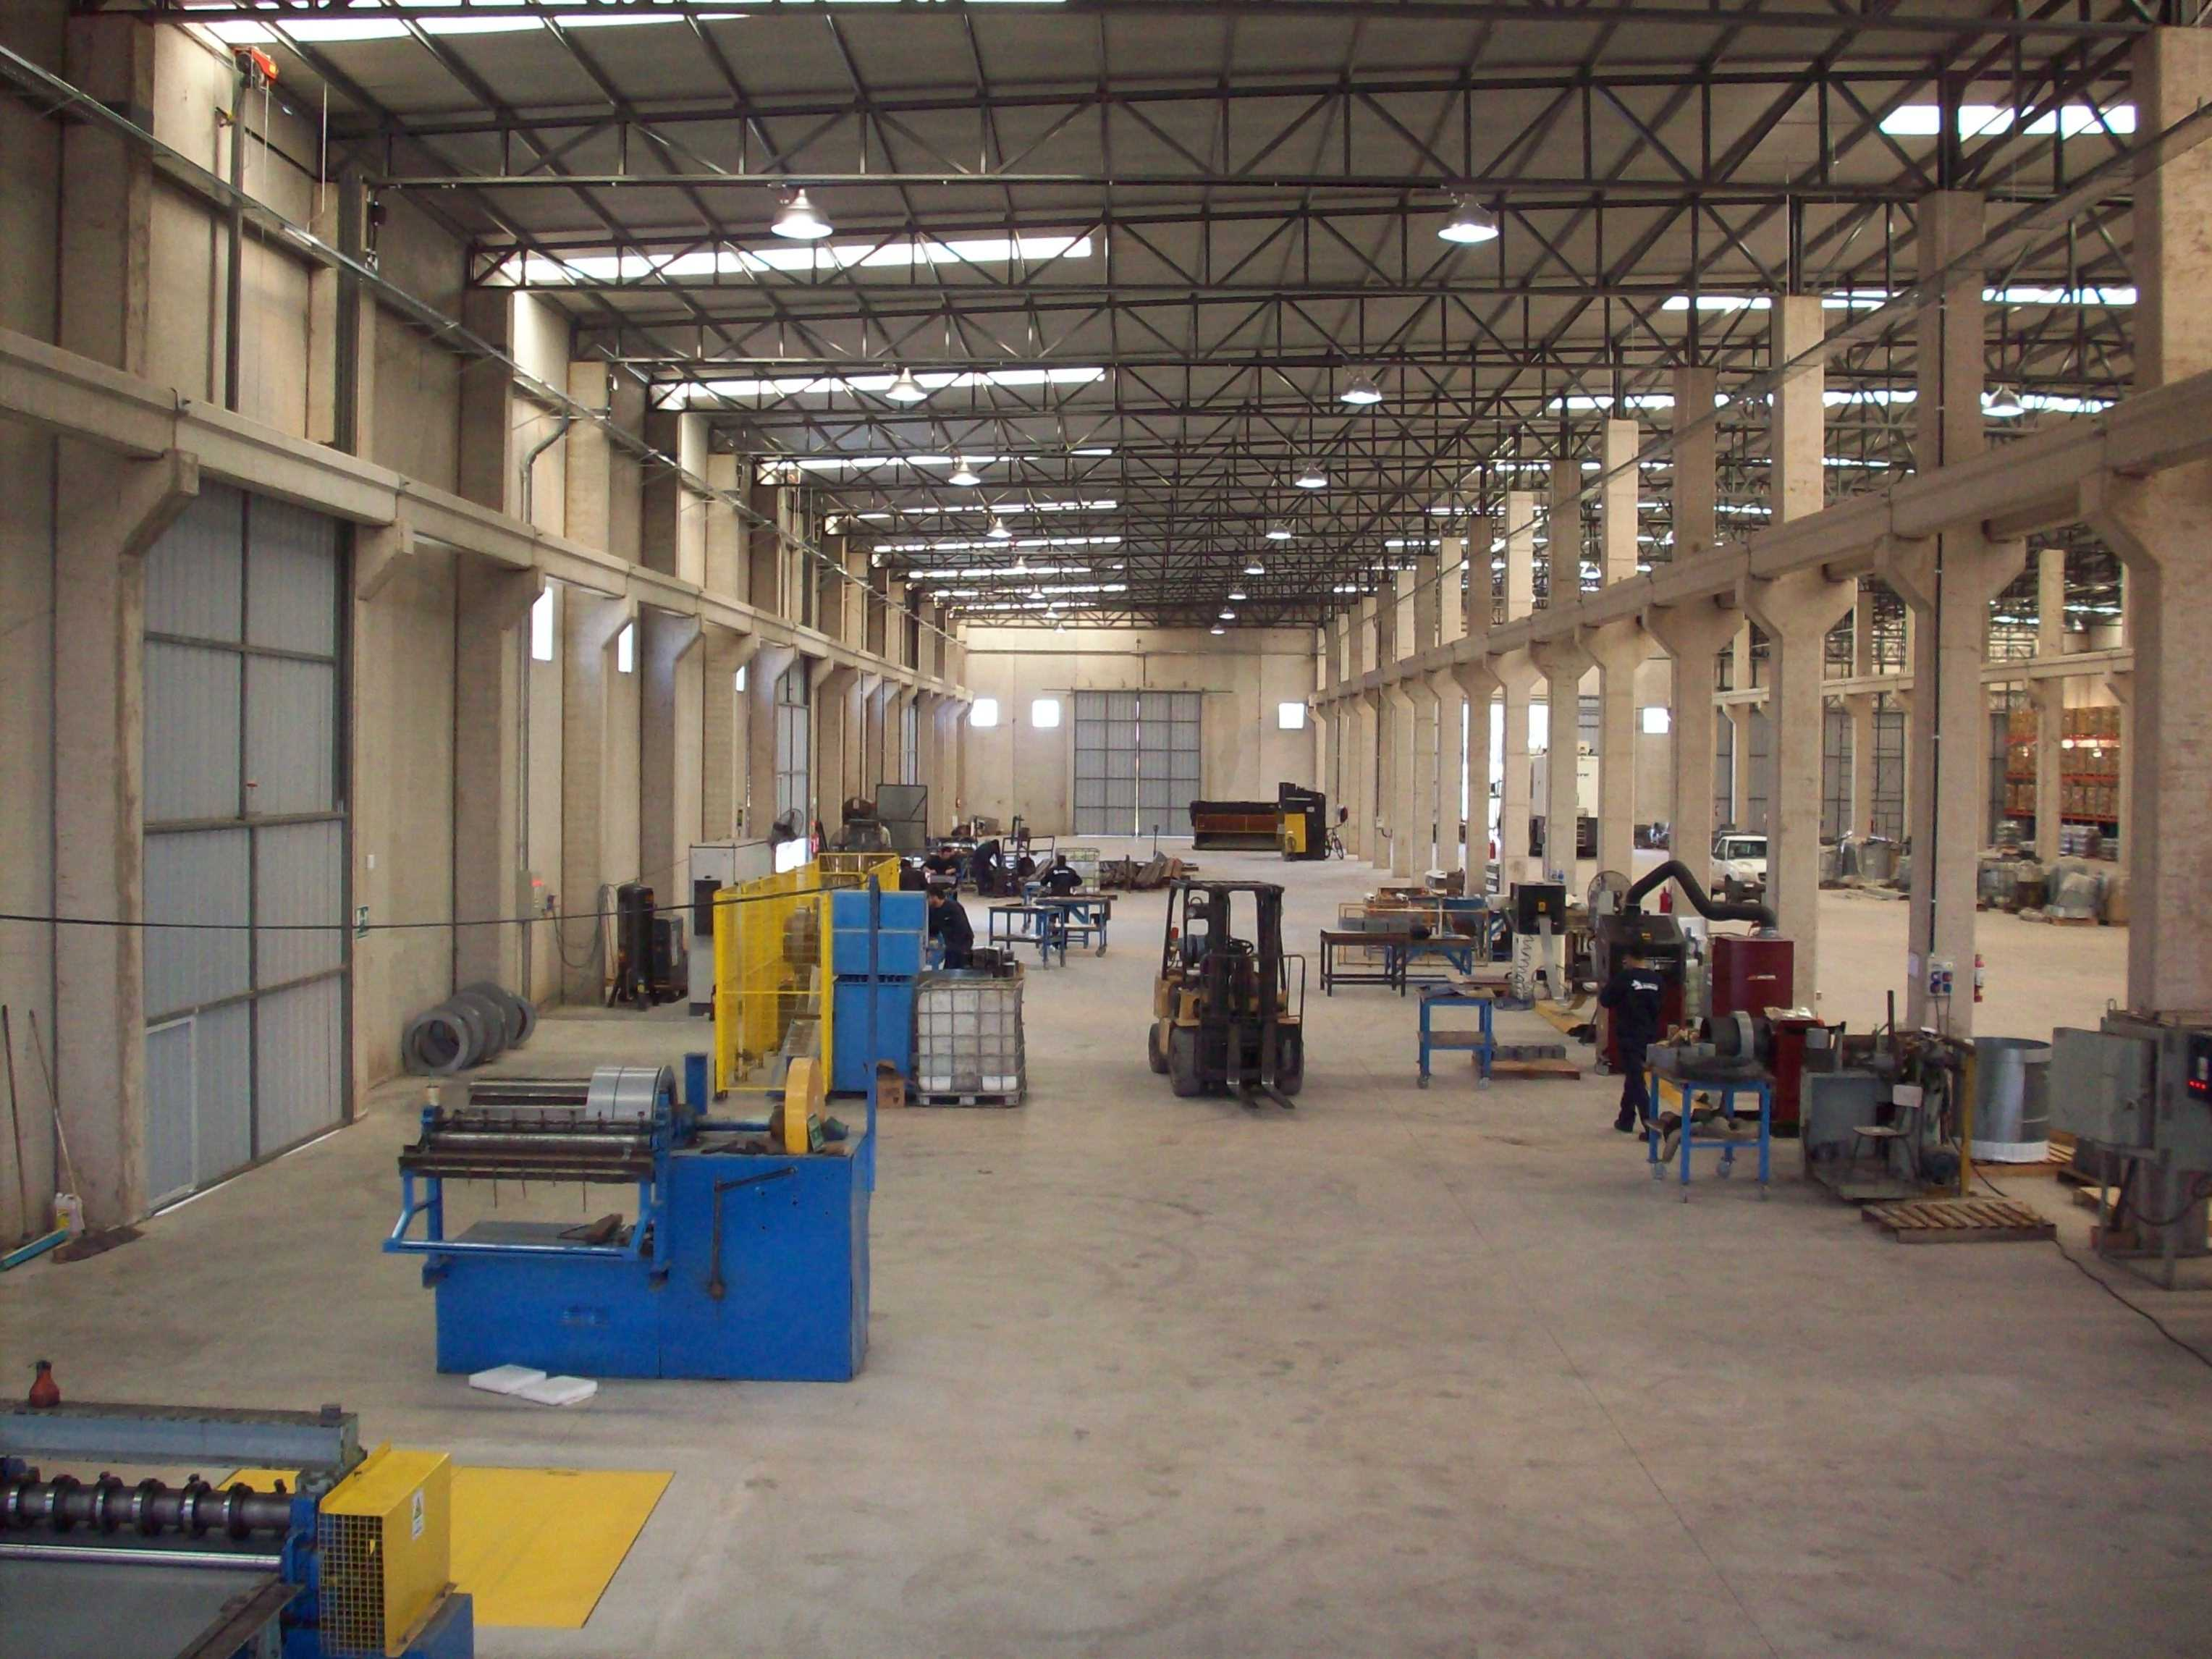 Intermediate Process´new plant - Parque Industrial  Villa Maria.